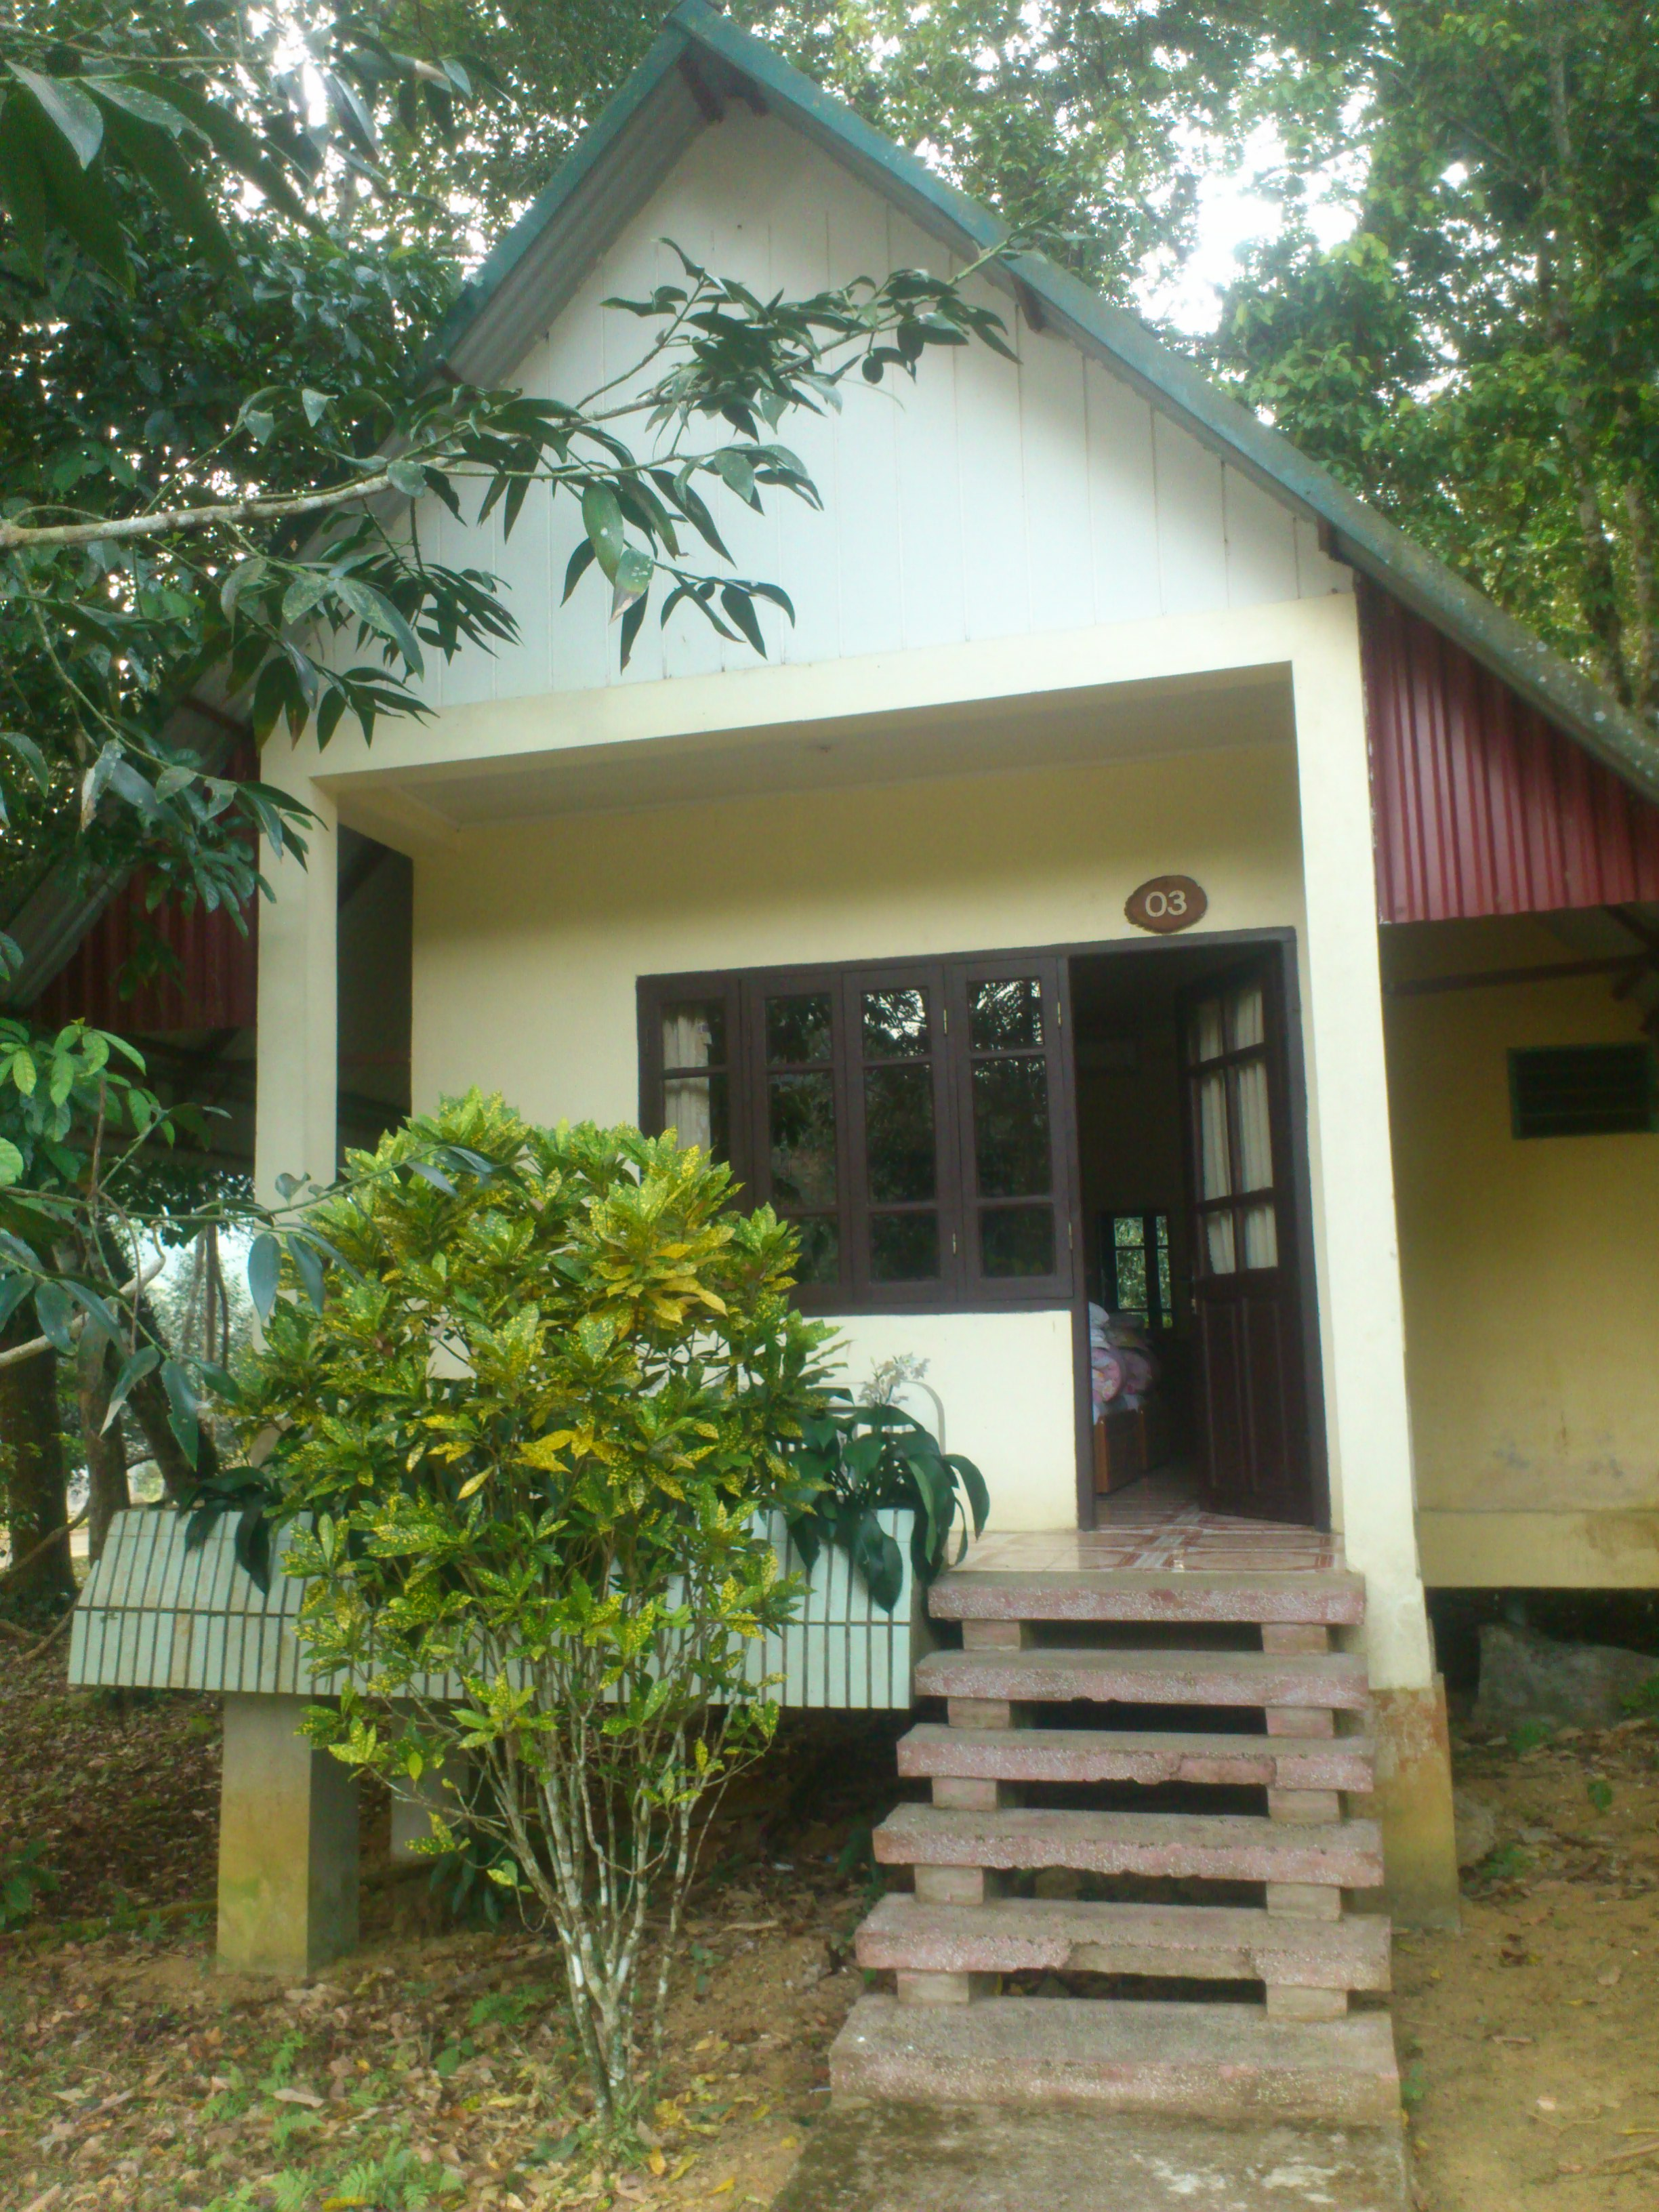 Our little home in the Jungle